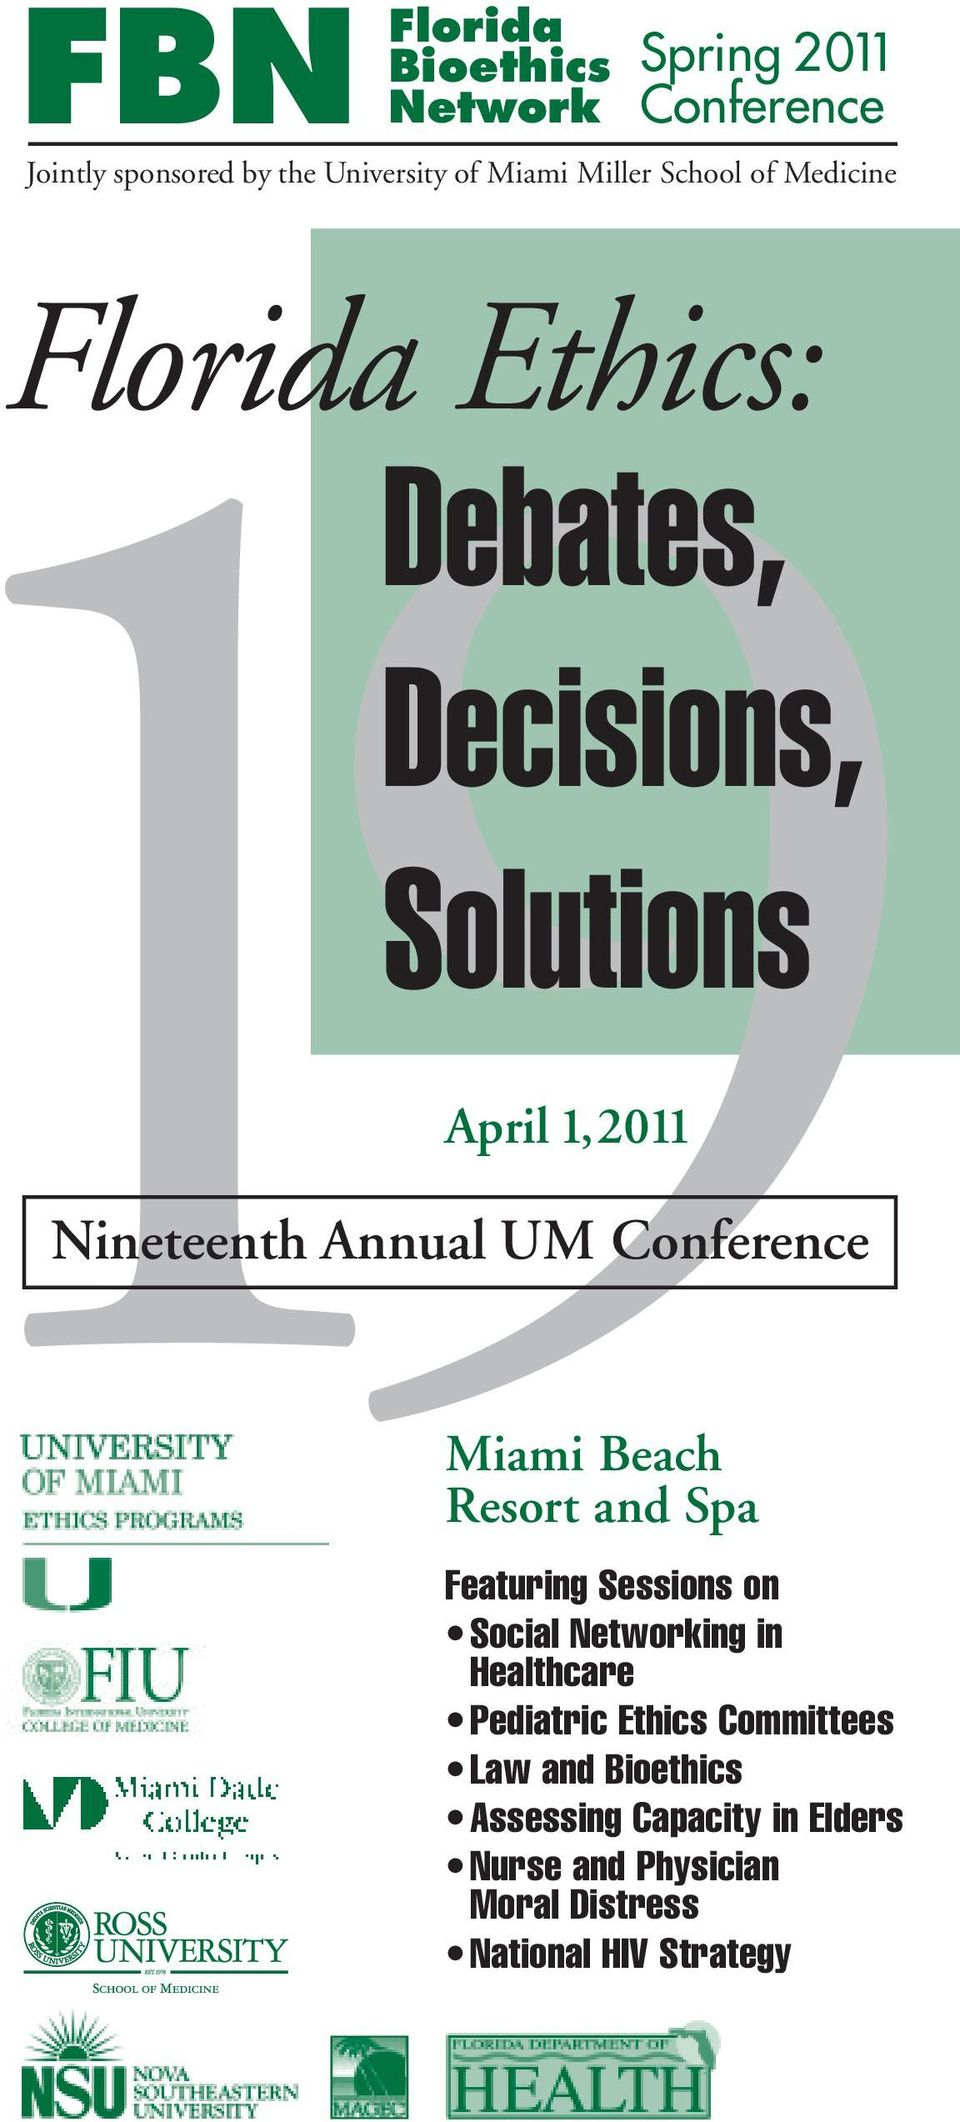 Conference Miami Beach Resort and Spa 9Featuring Sessions on Social Networking in Healthcare Pediatric